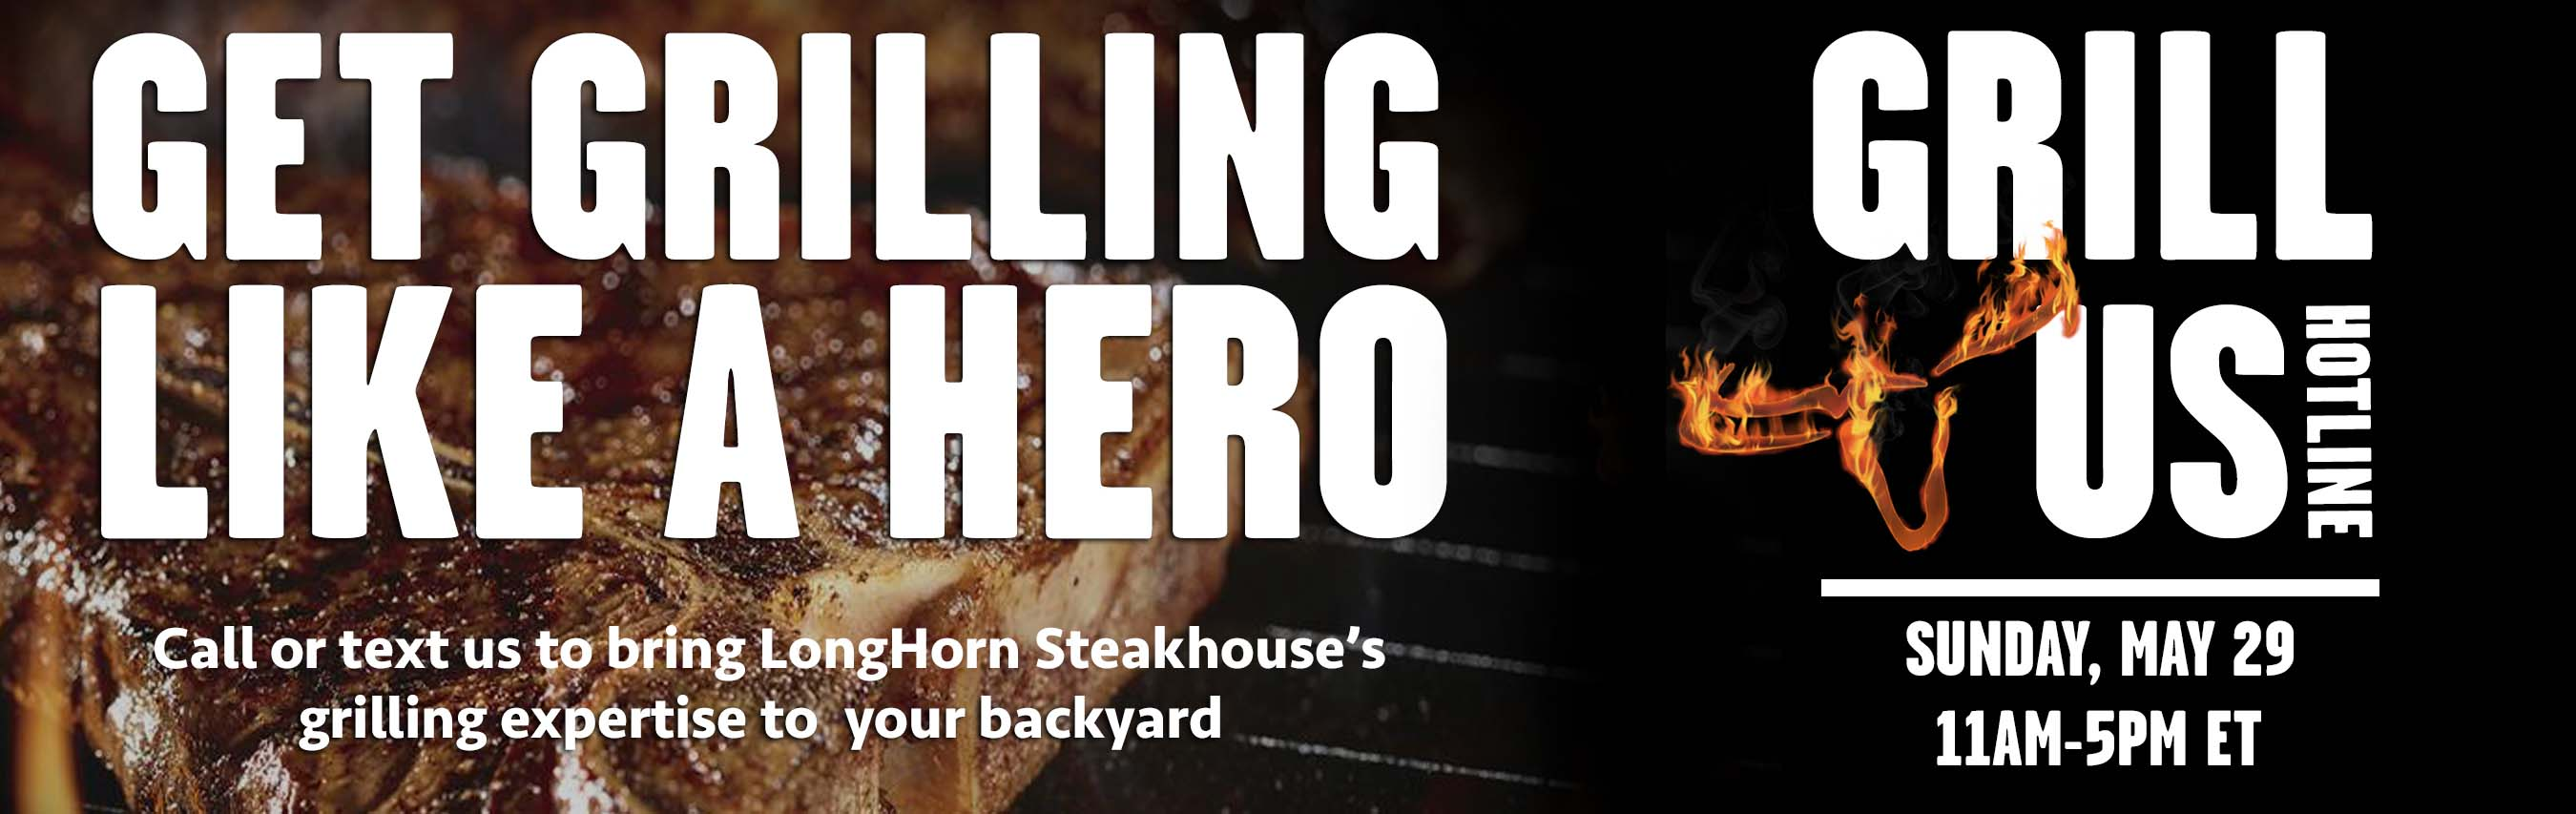 LongHorn Steakhouse Takes The Guesswork Out Of Grilling This Memorial Day  Weekend